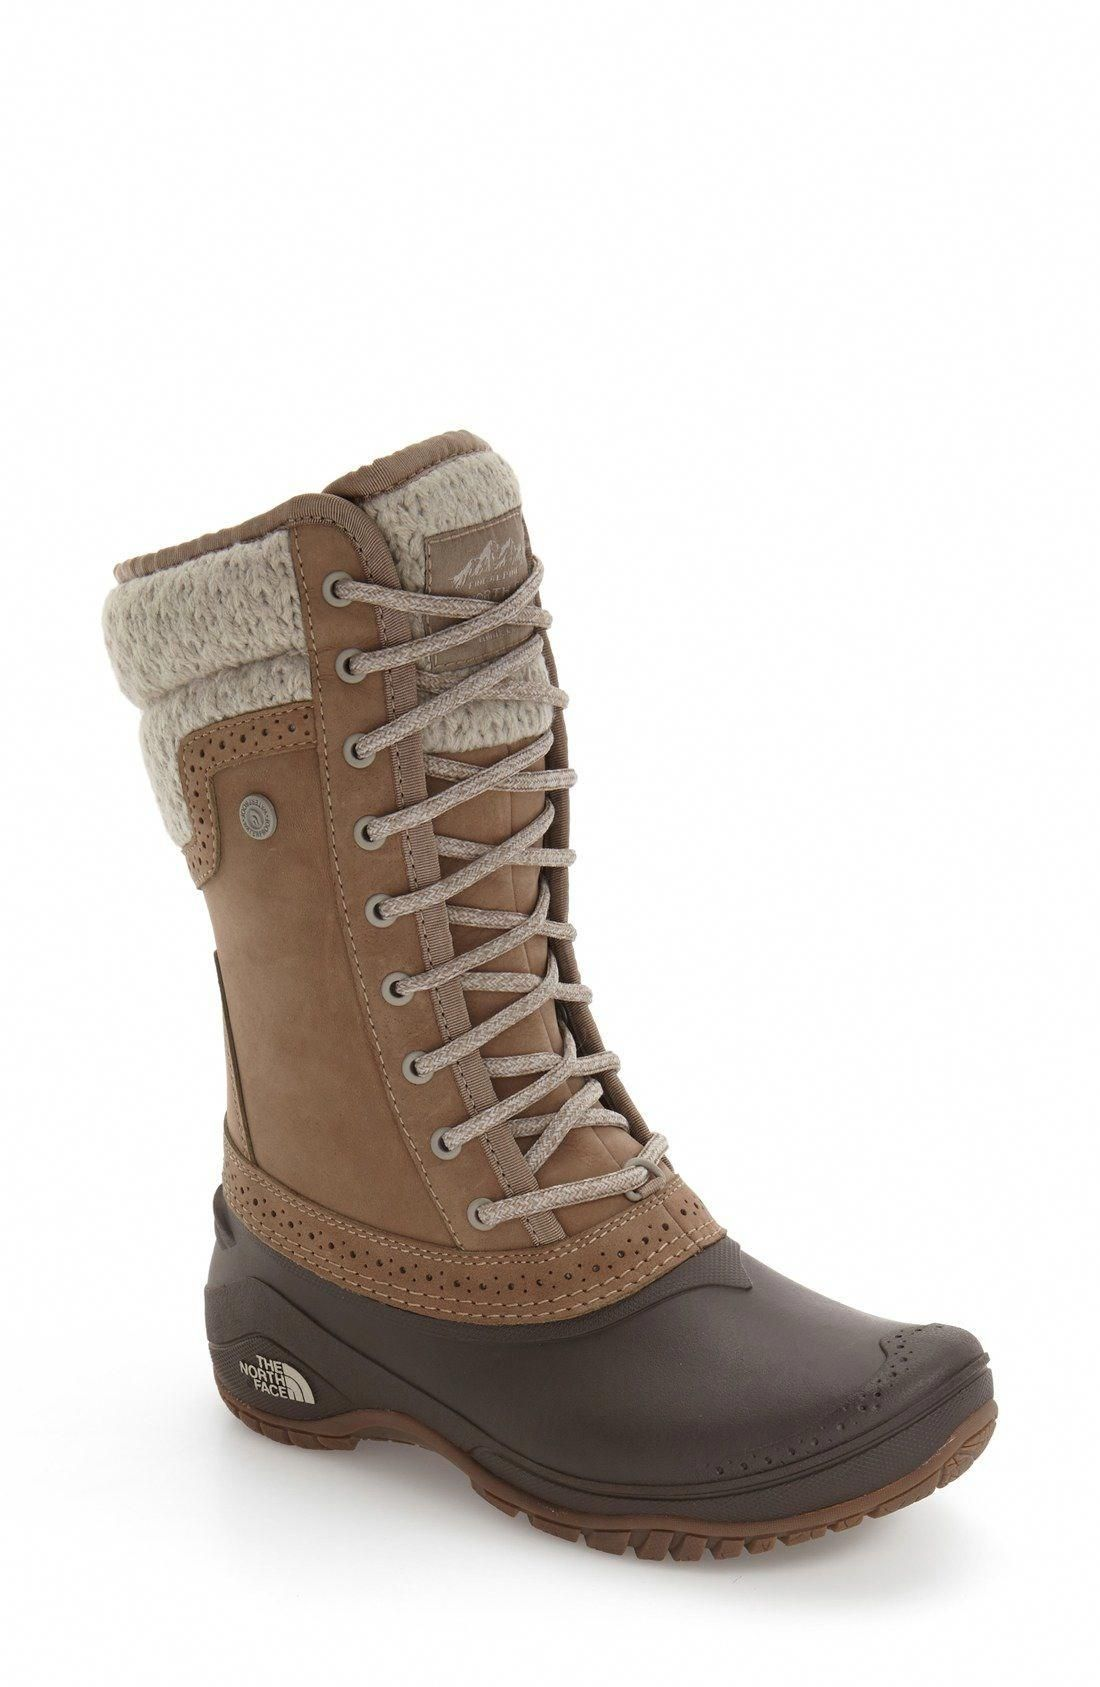 5771529d7a1 The North Face  Shellista  Waterproof Insulated Snow Boot (Women) available  at  Nordstrom  snowboots